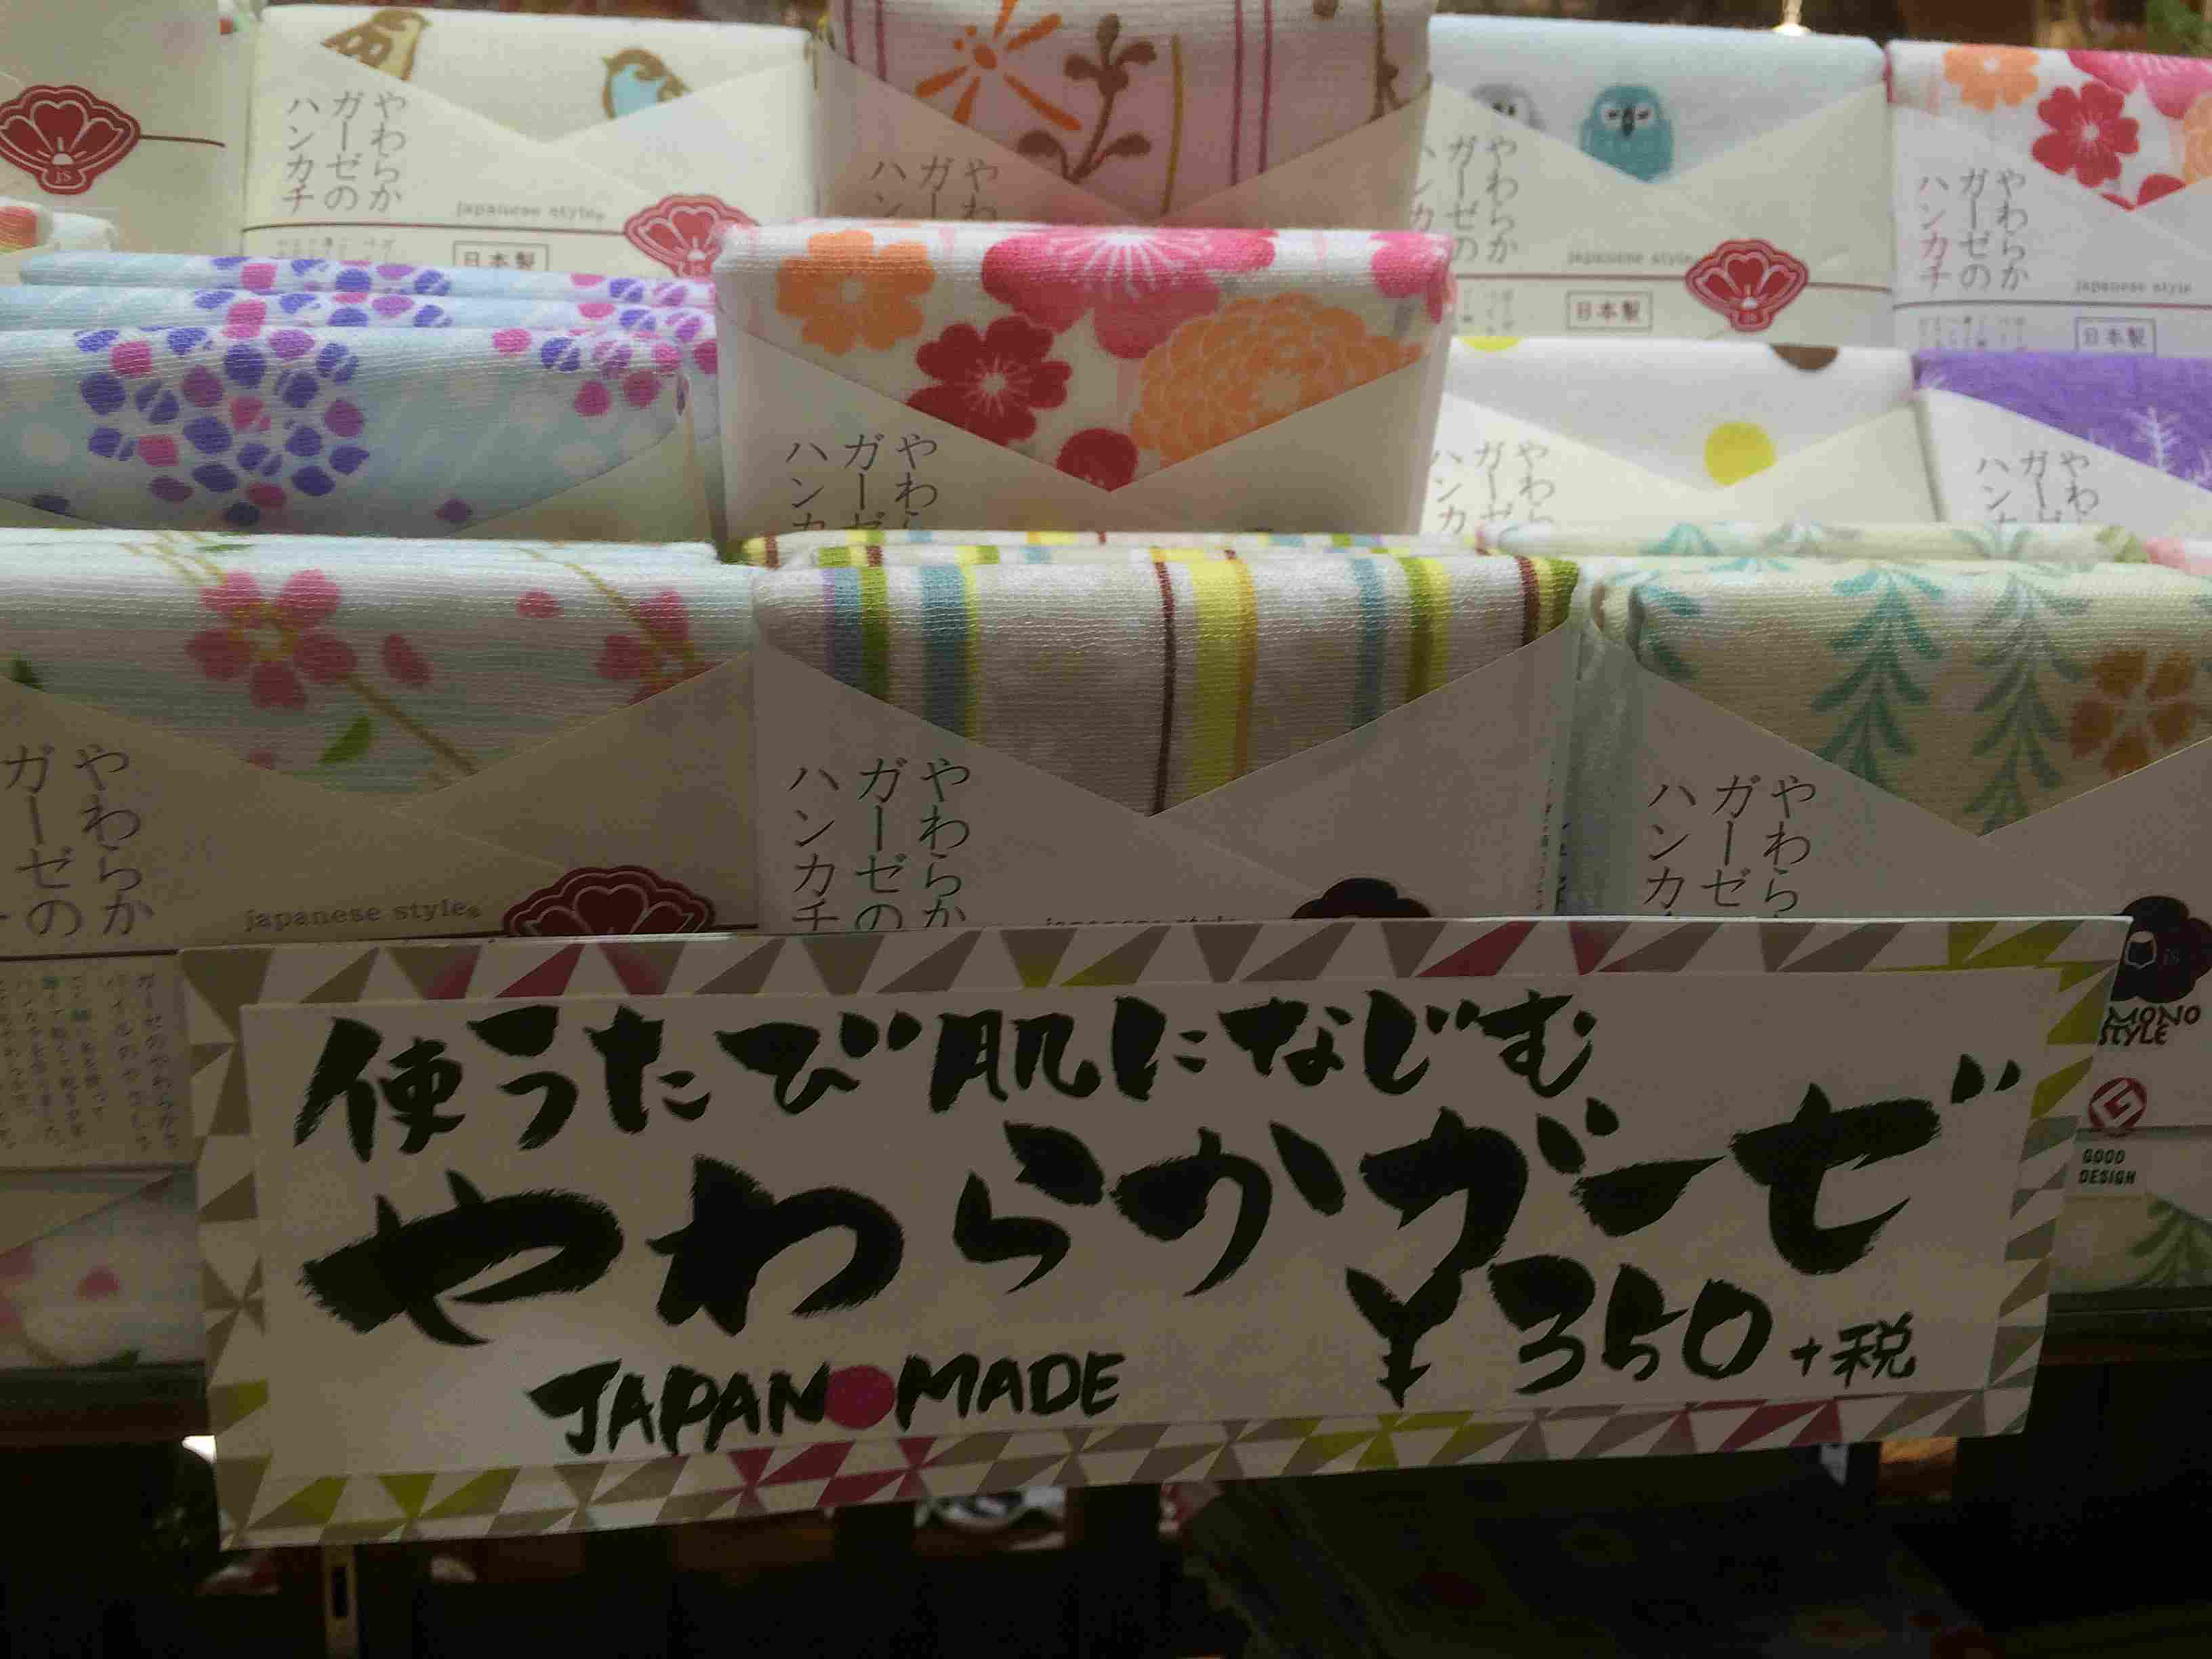 Japanese hand towels.